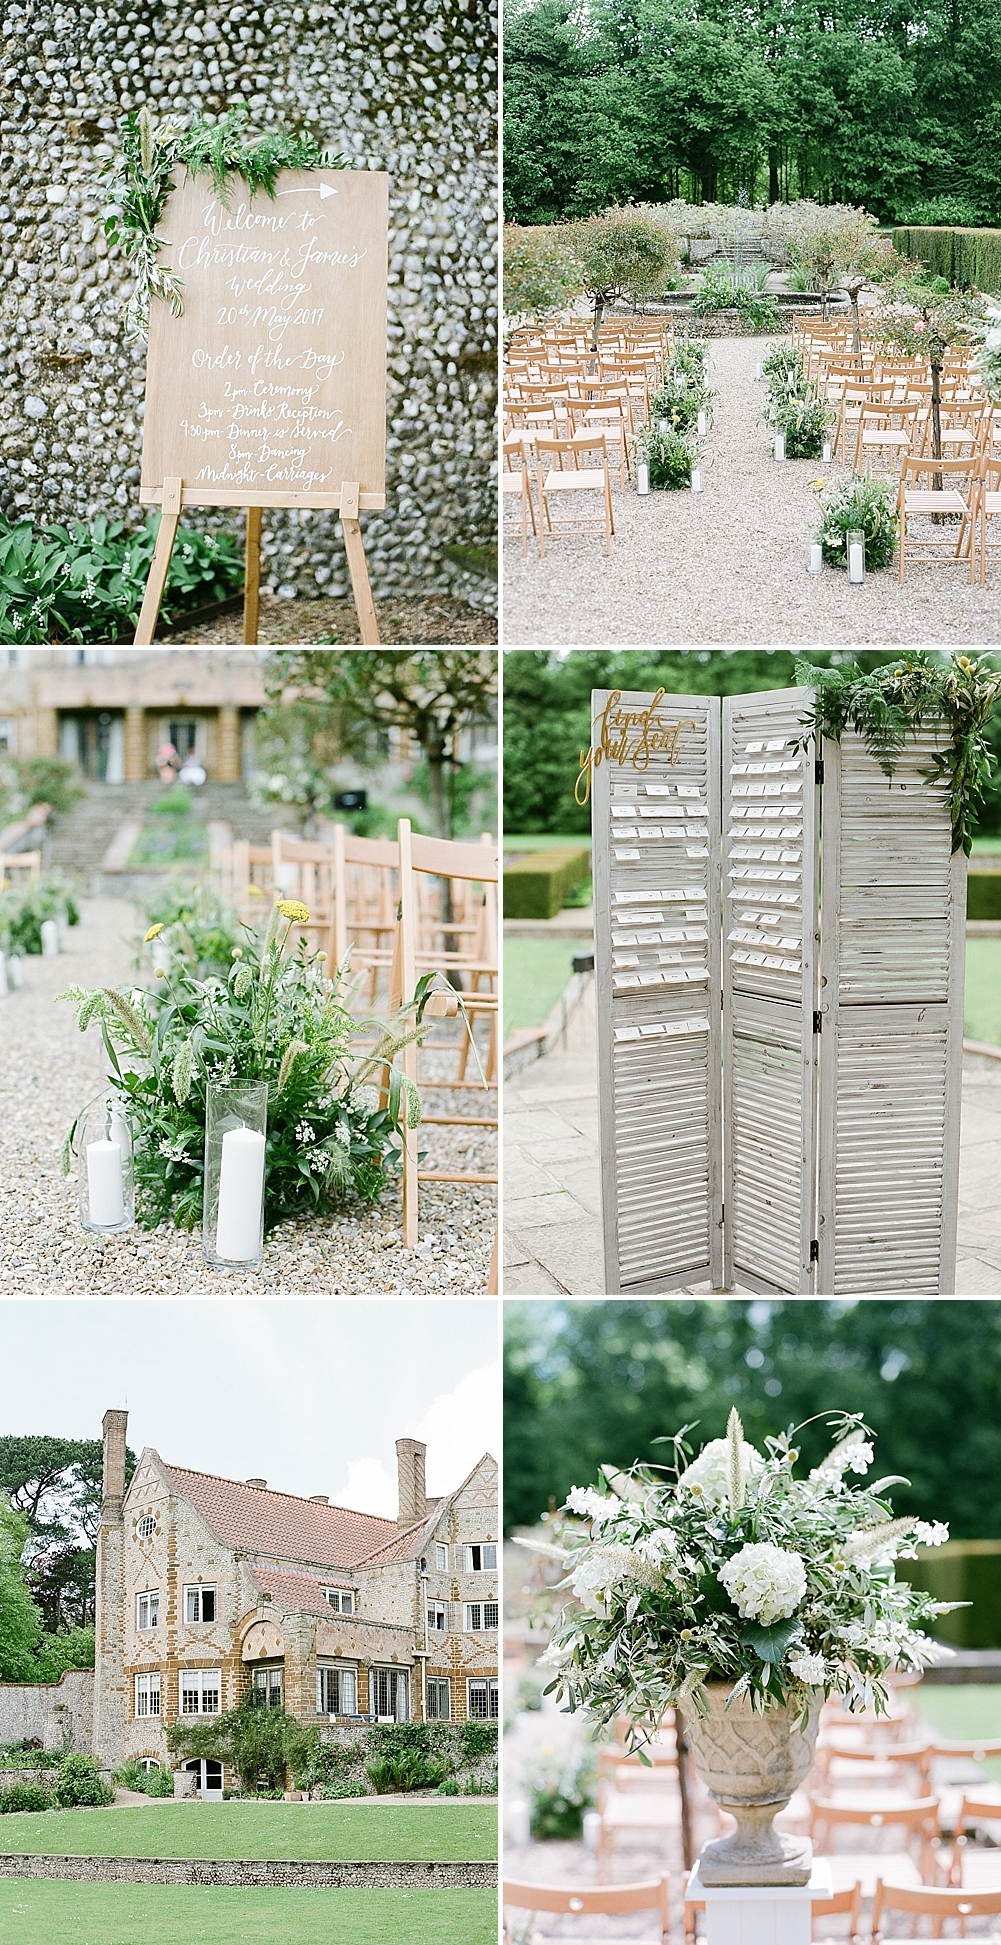 Classic Country Wedding at Voewood, Norfolk Planned by Vanilla Rose Weddings & Events